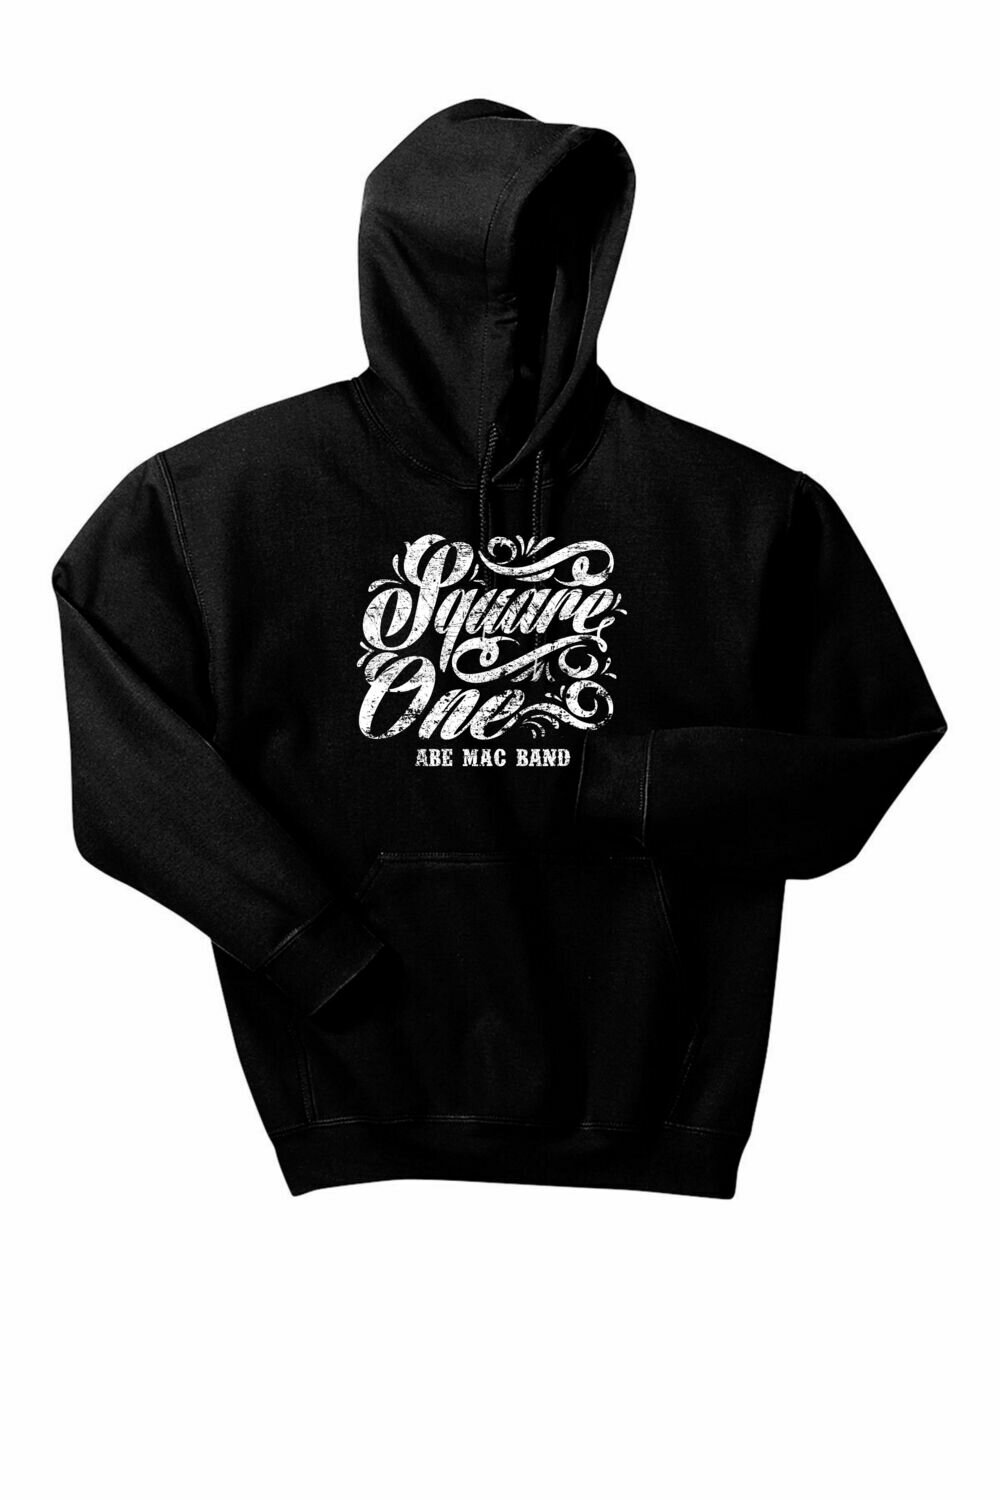 Square One Hoodie